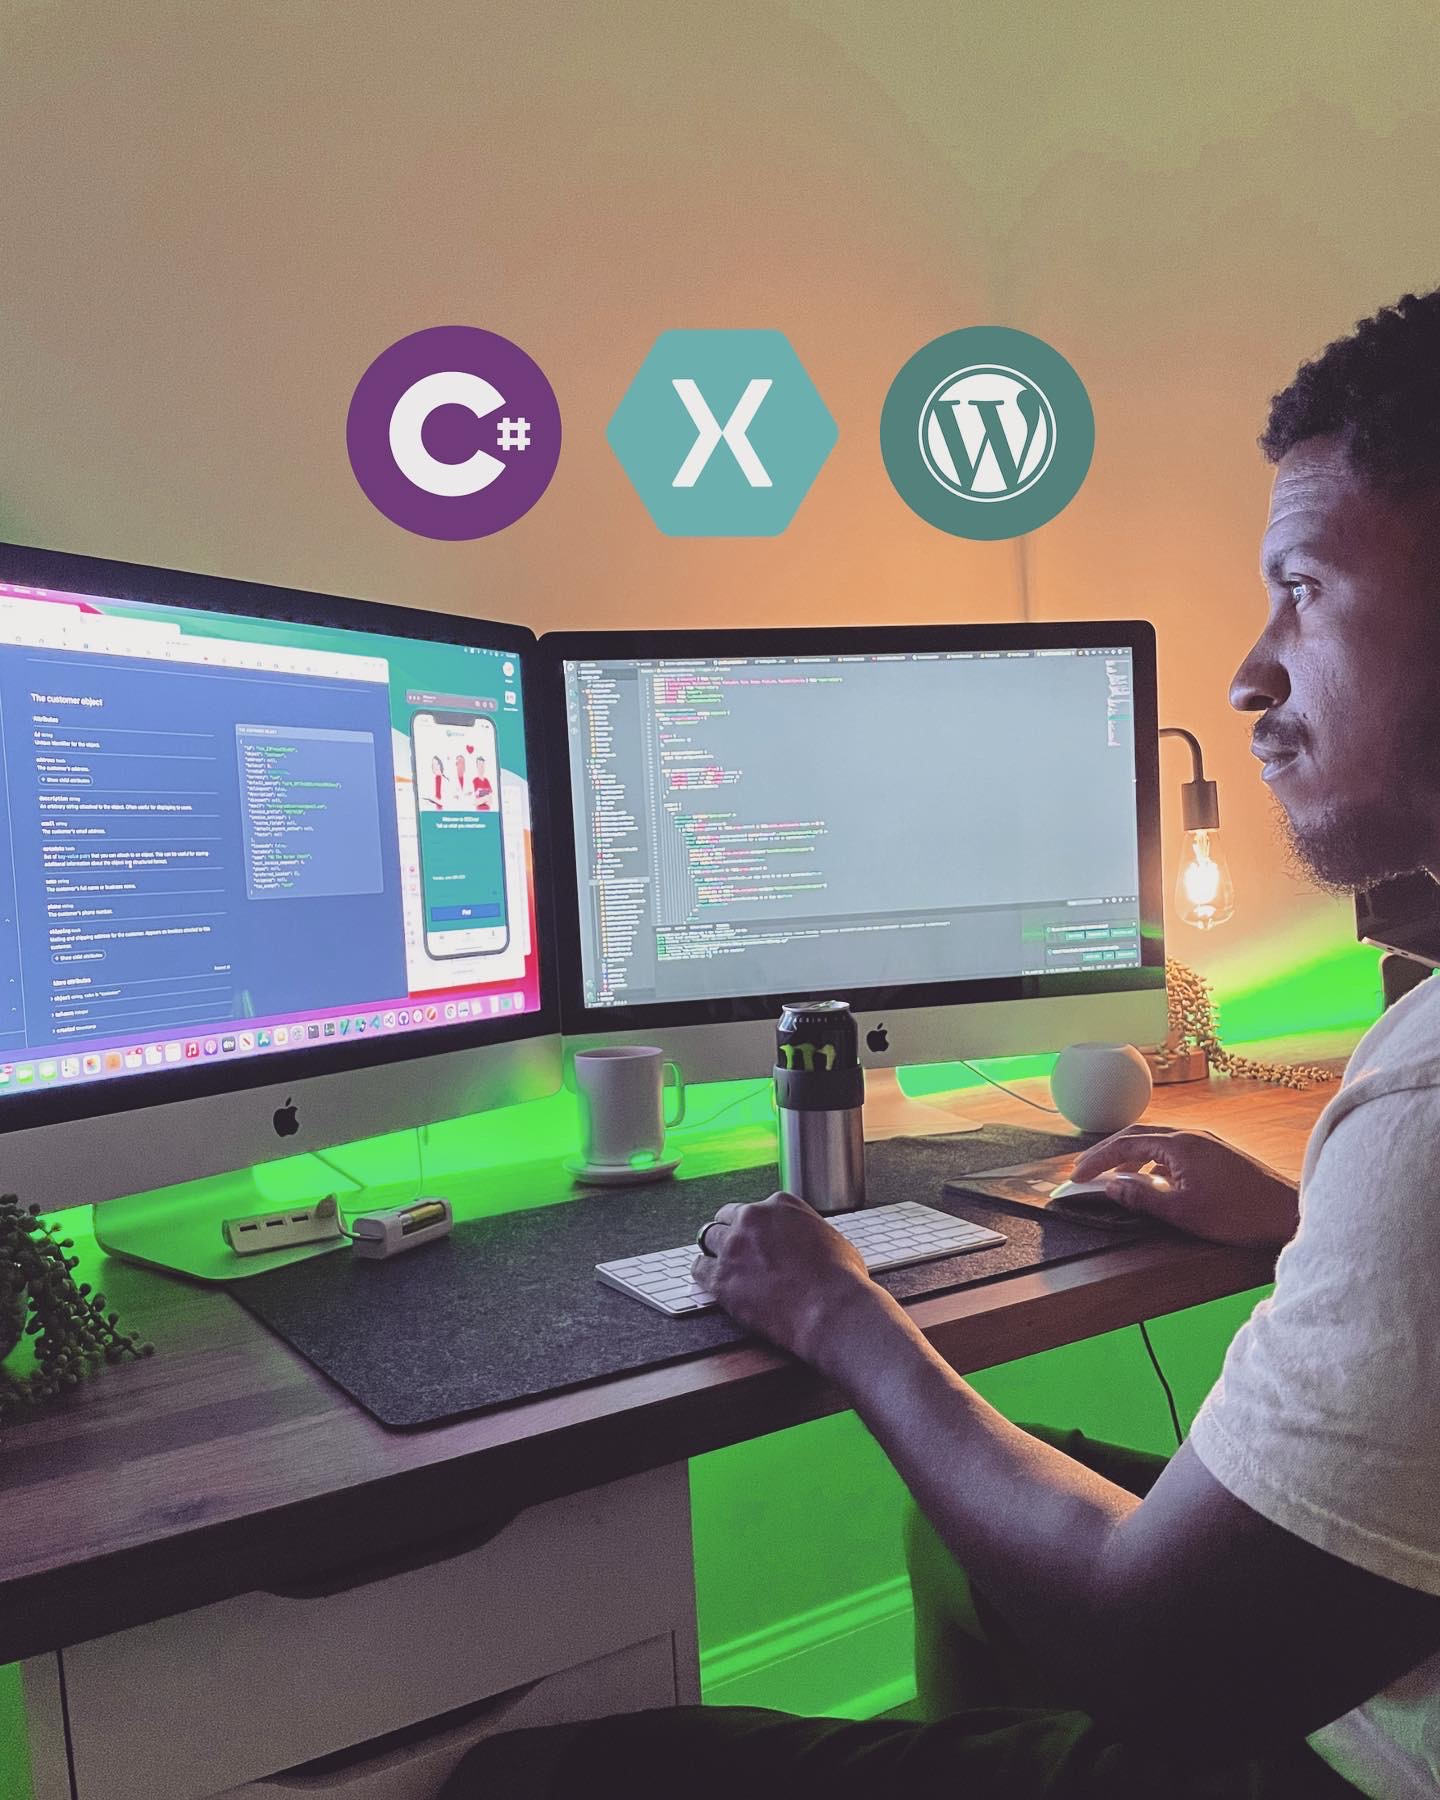 Late night coding with Xamarin and WordPress projects